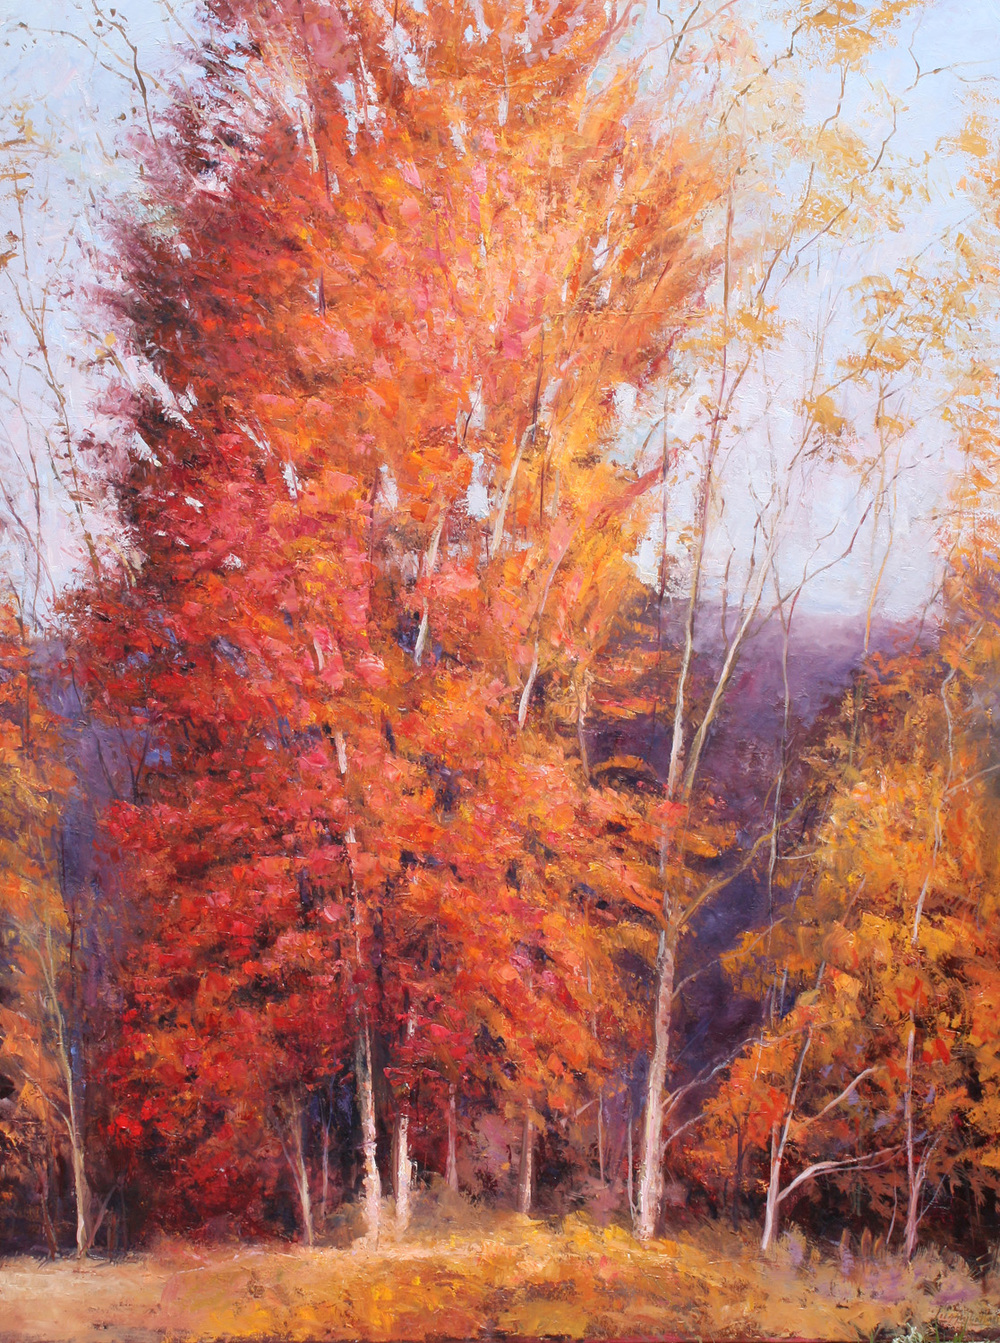 Autumn Resonance II